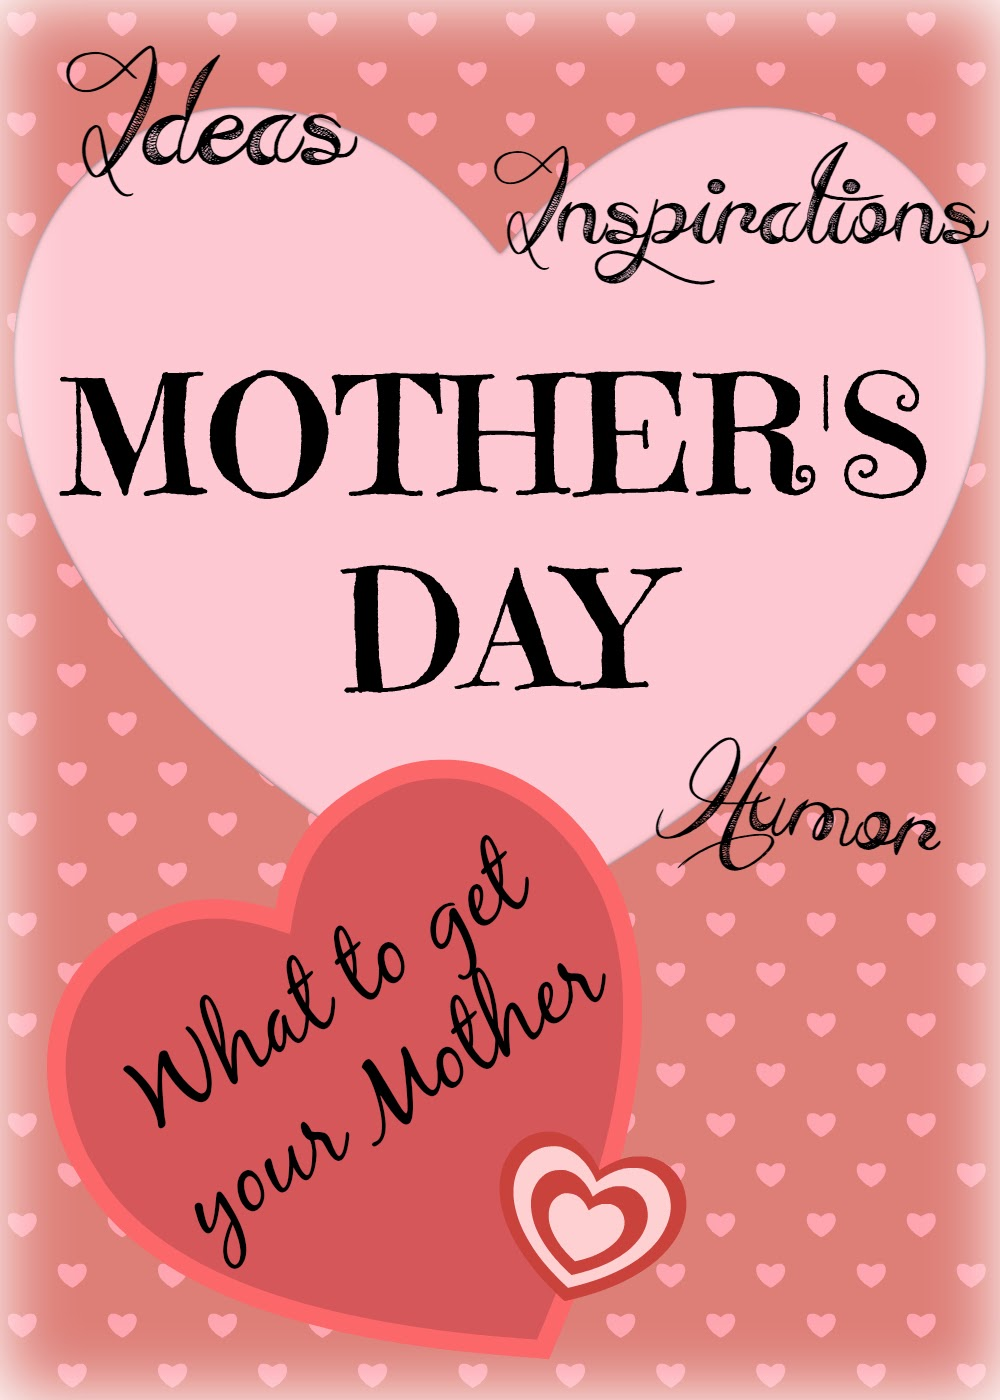 A not entirely serious gift guide || Mother's Day - What to get your Mother | Funky Jungle, fashion & personal style blog